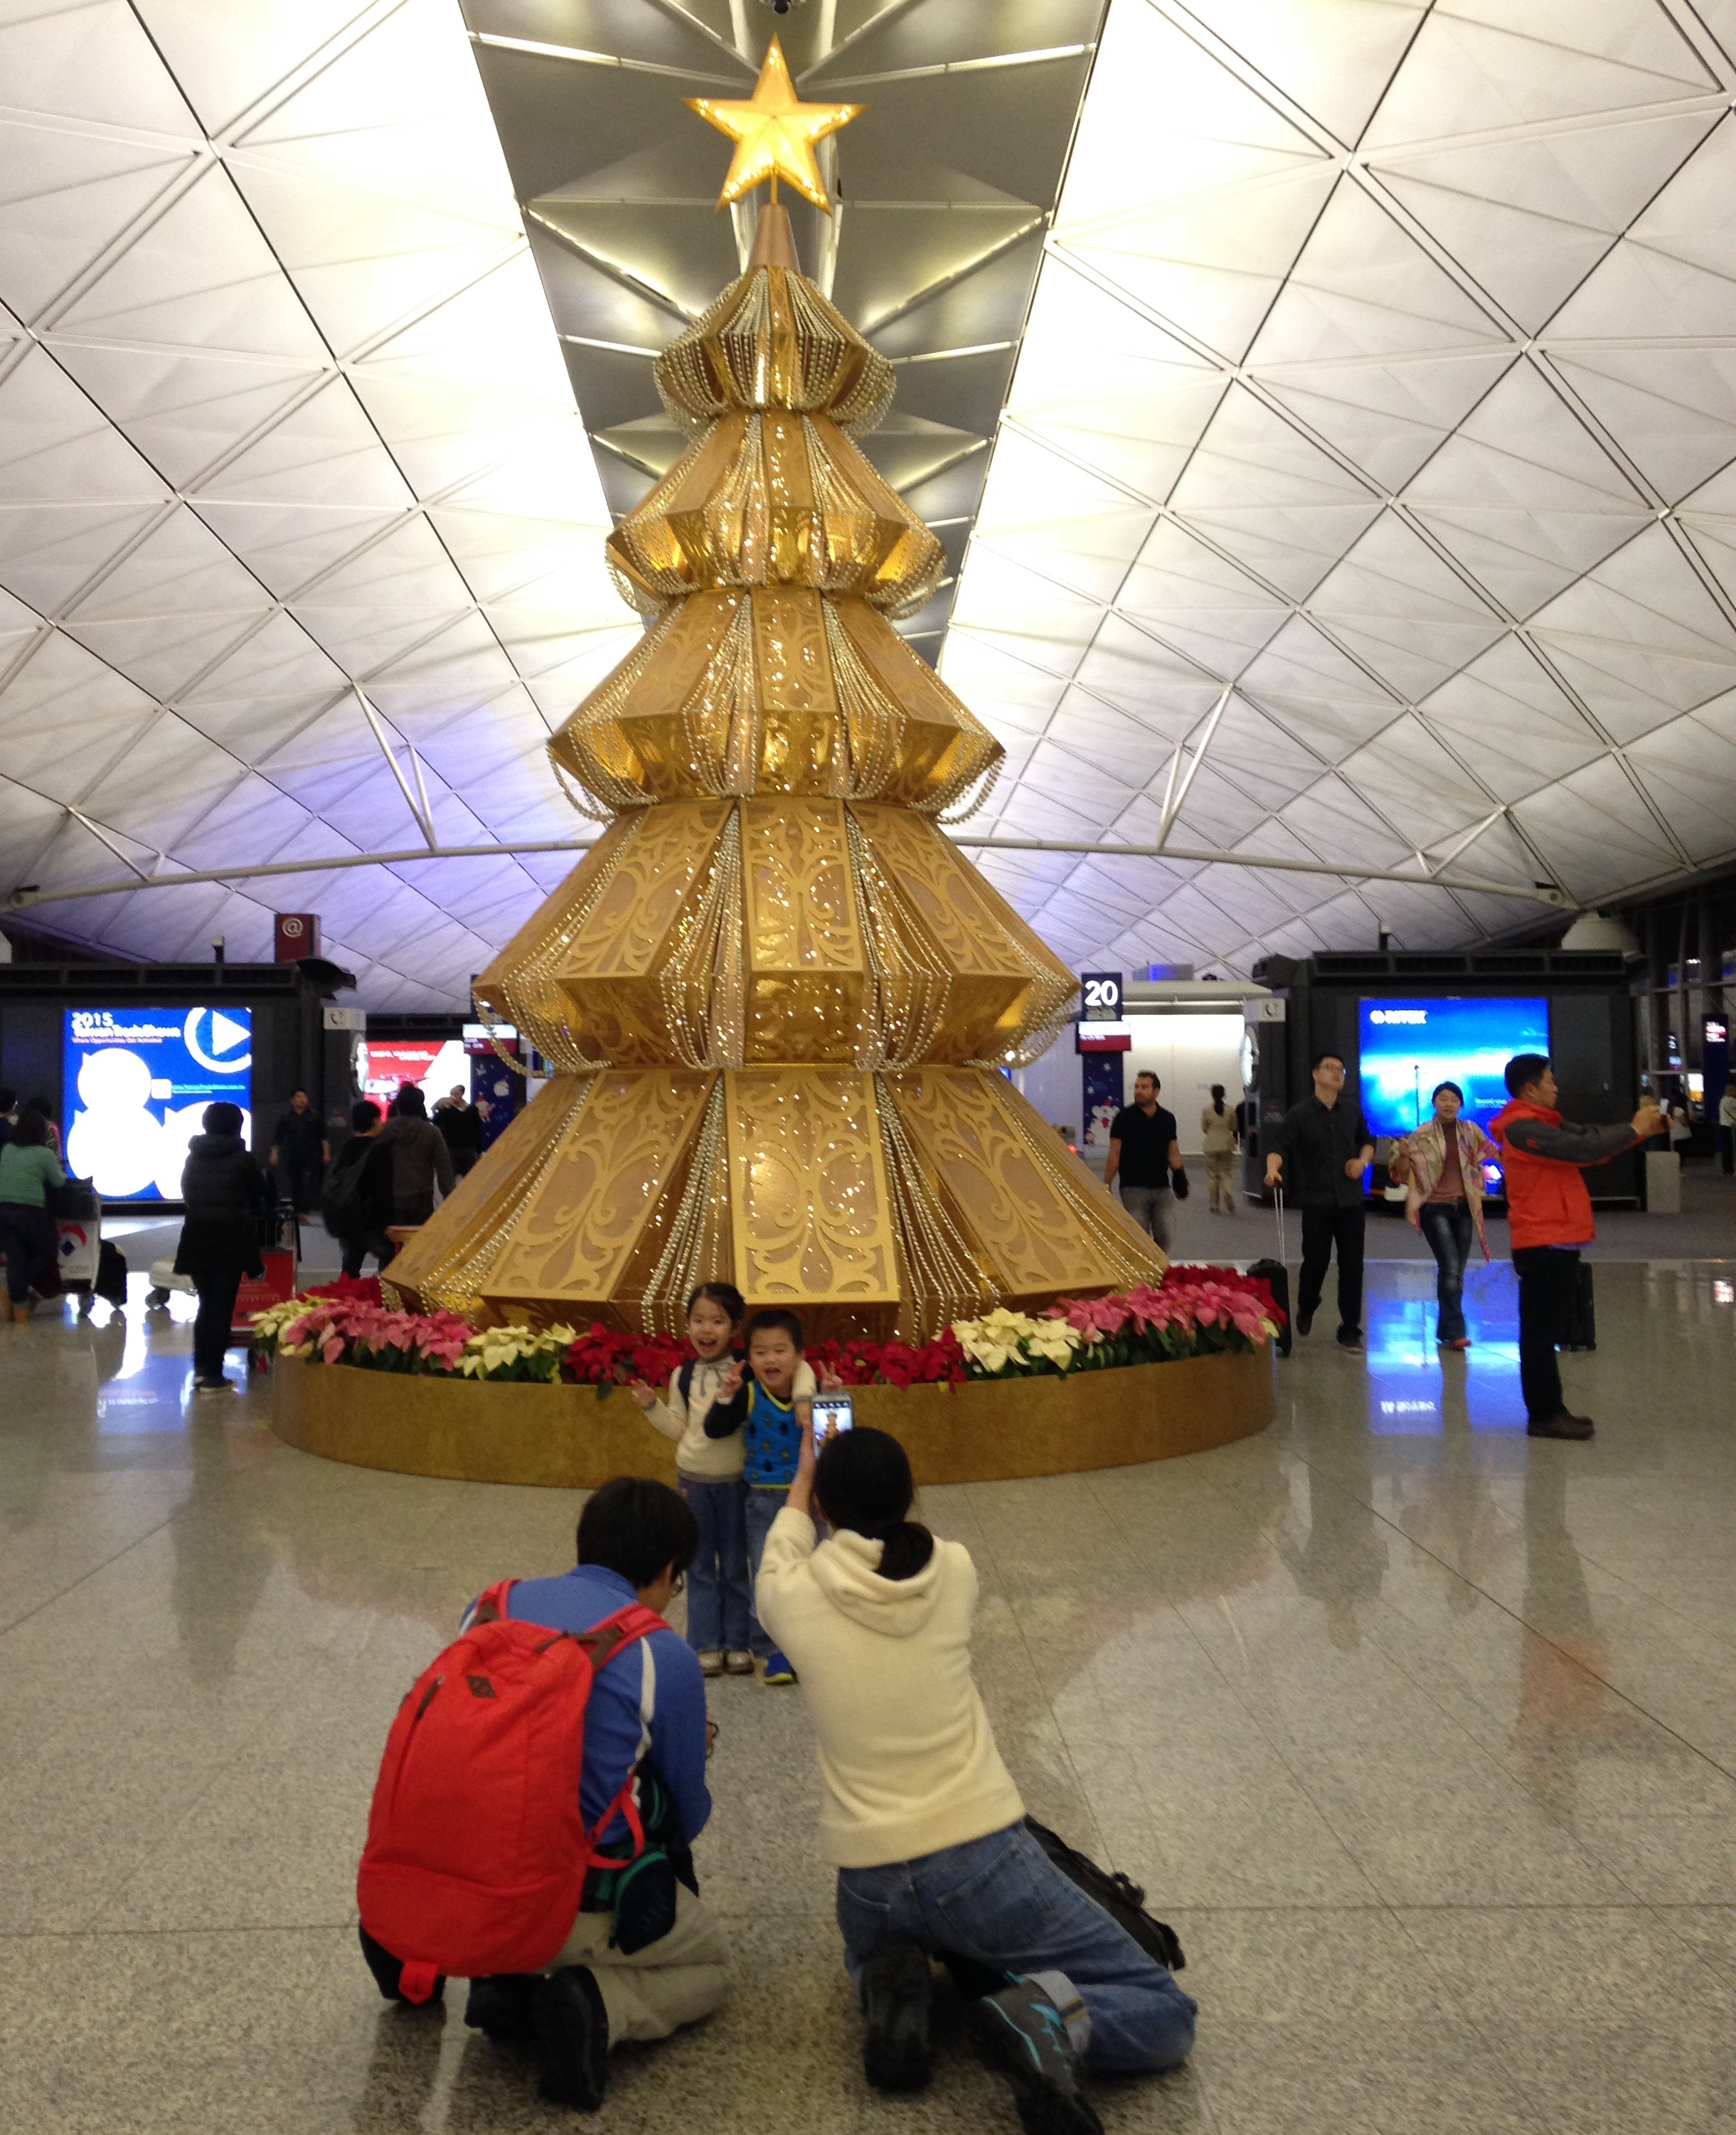 Hong Kong's Airport feels like the high end shopping mall of the future